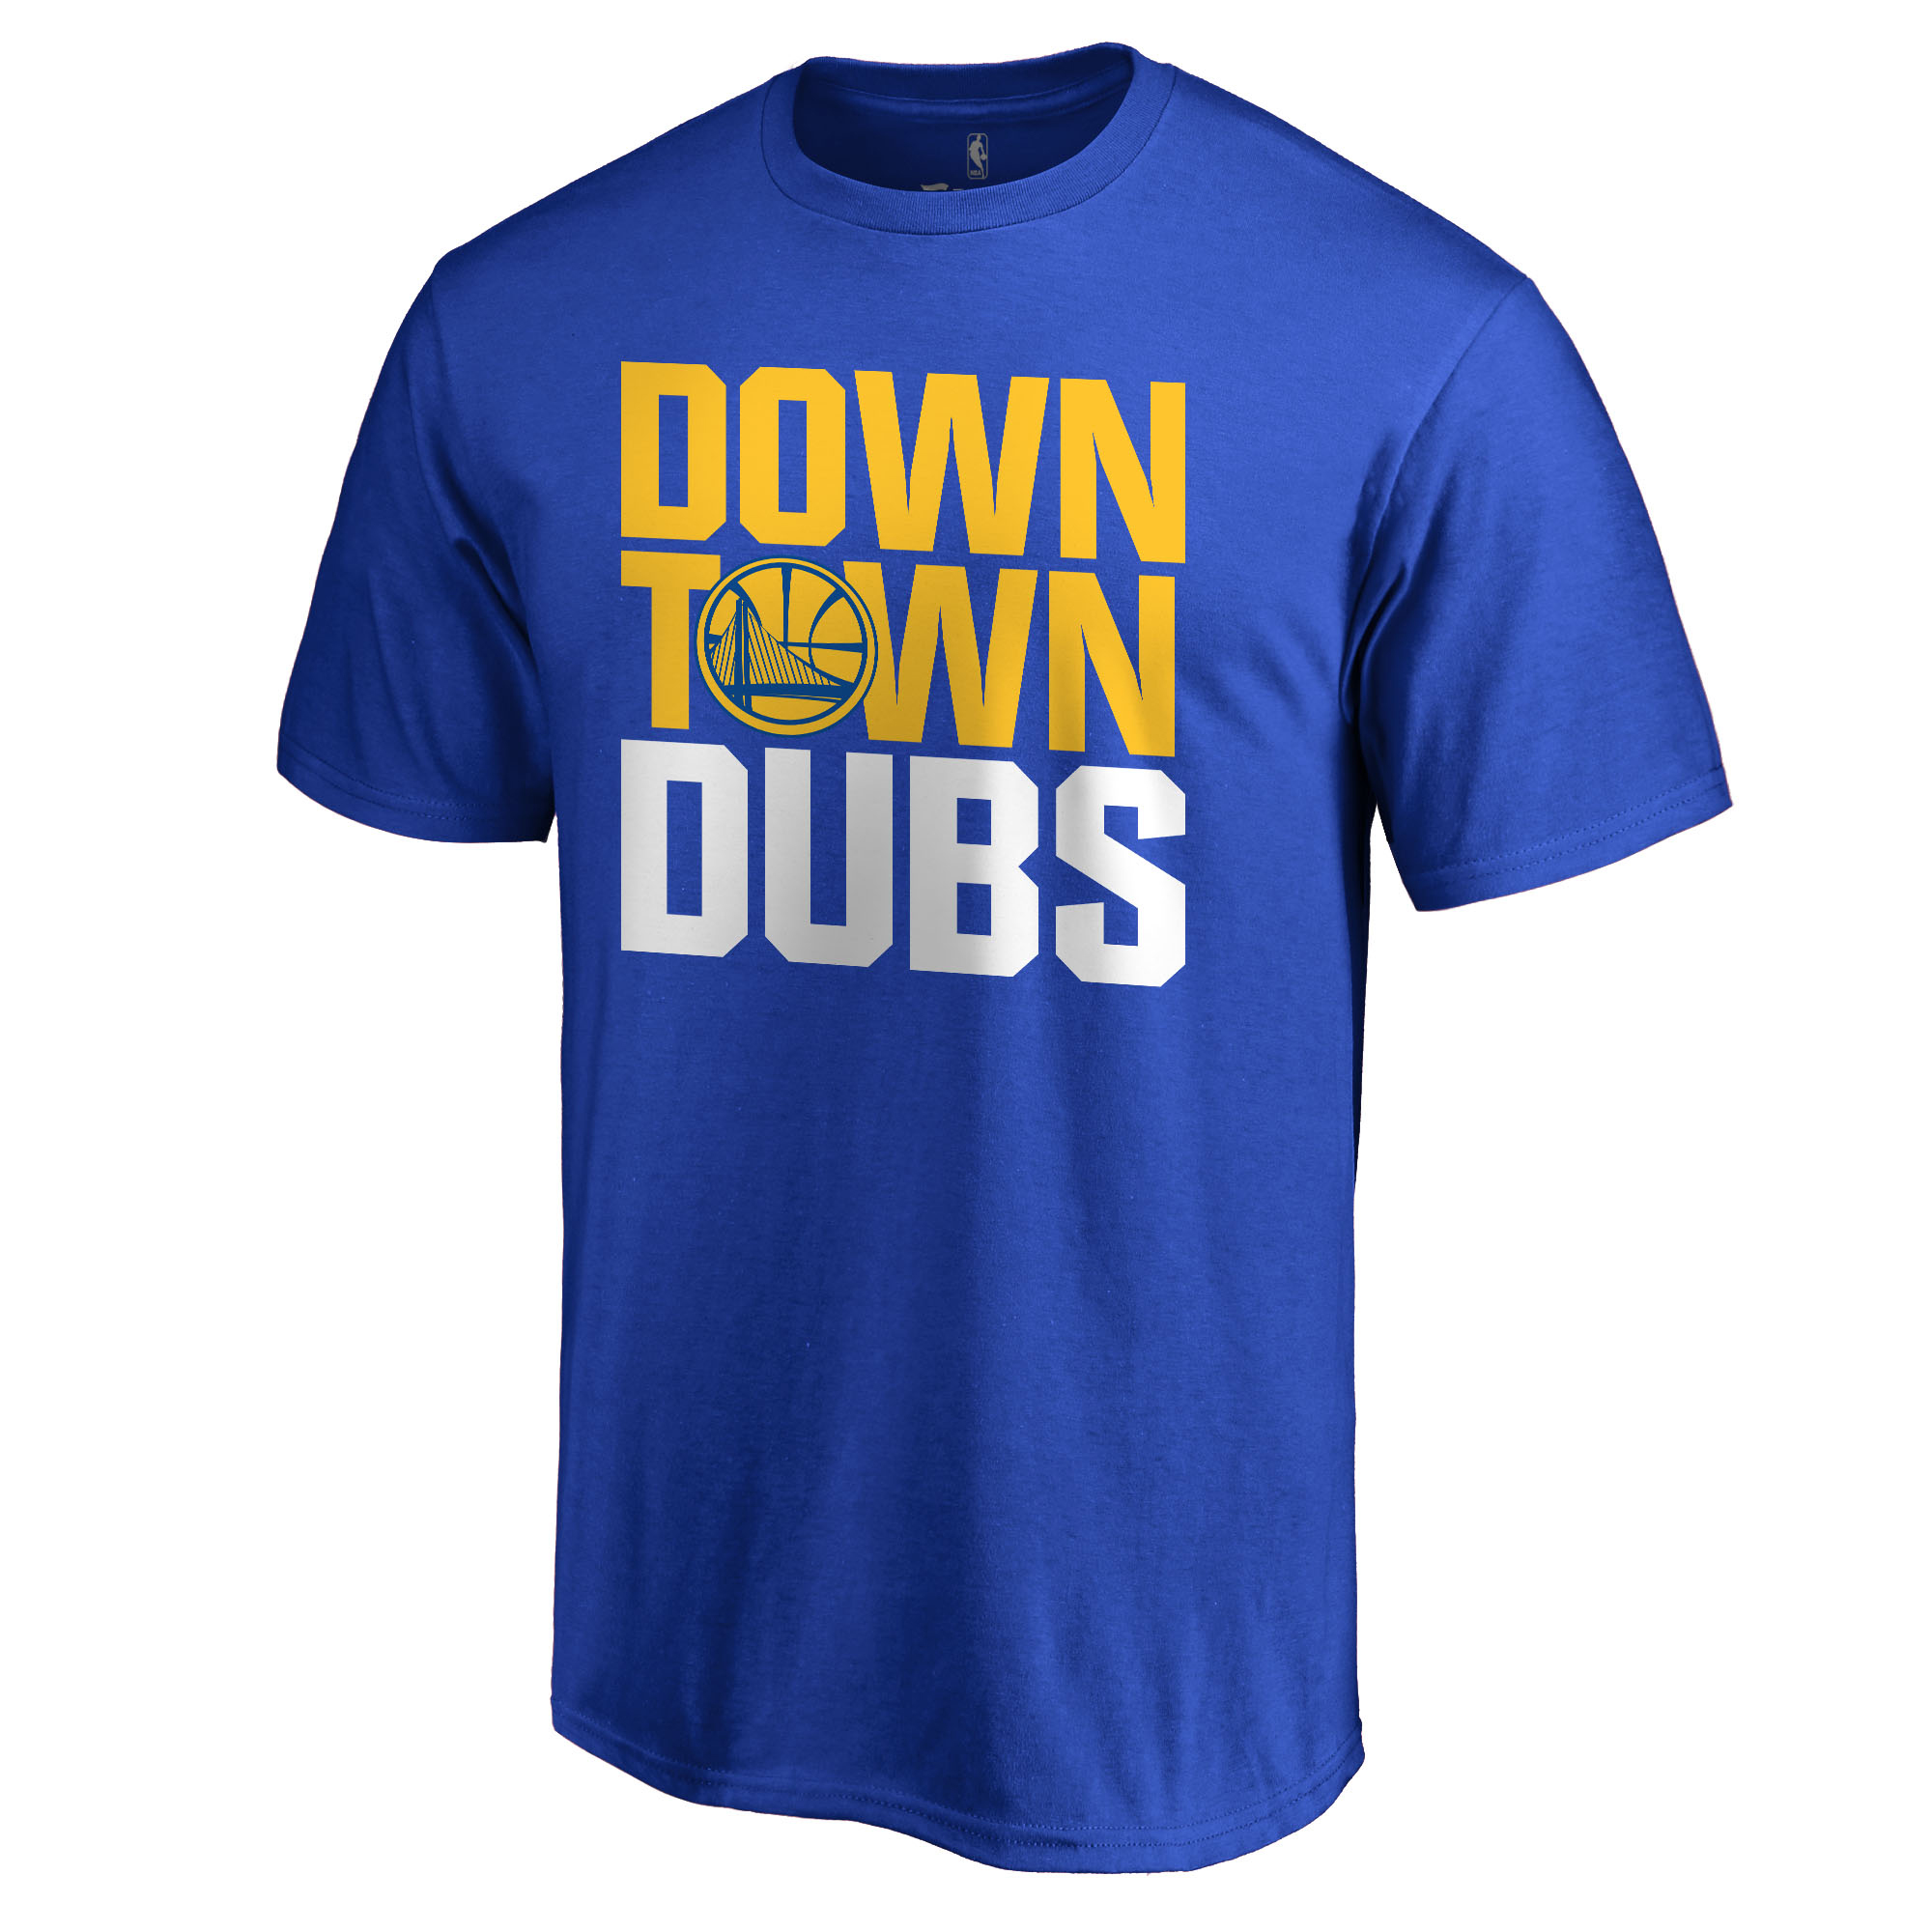 Golden State Warriors Hometown Collection Downtown T-Shirt - Royal